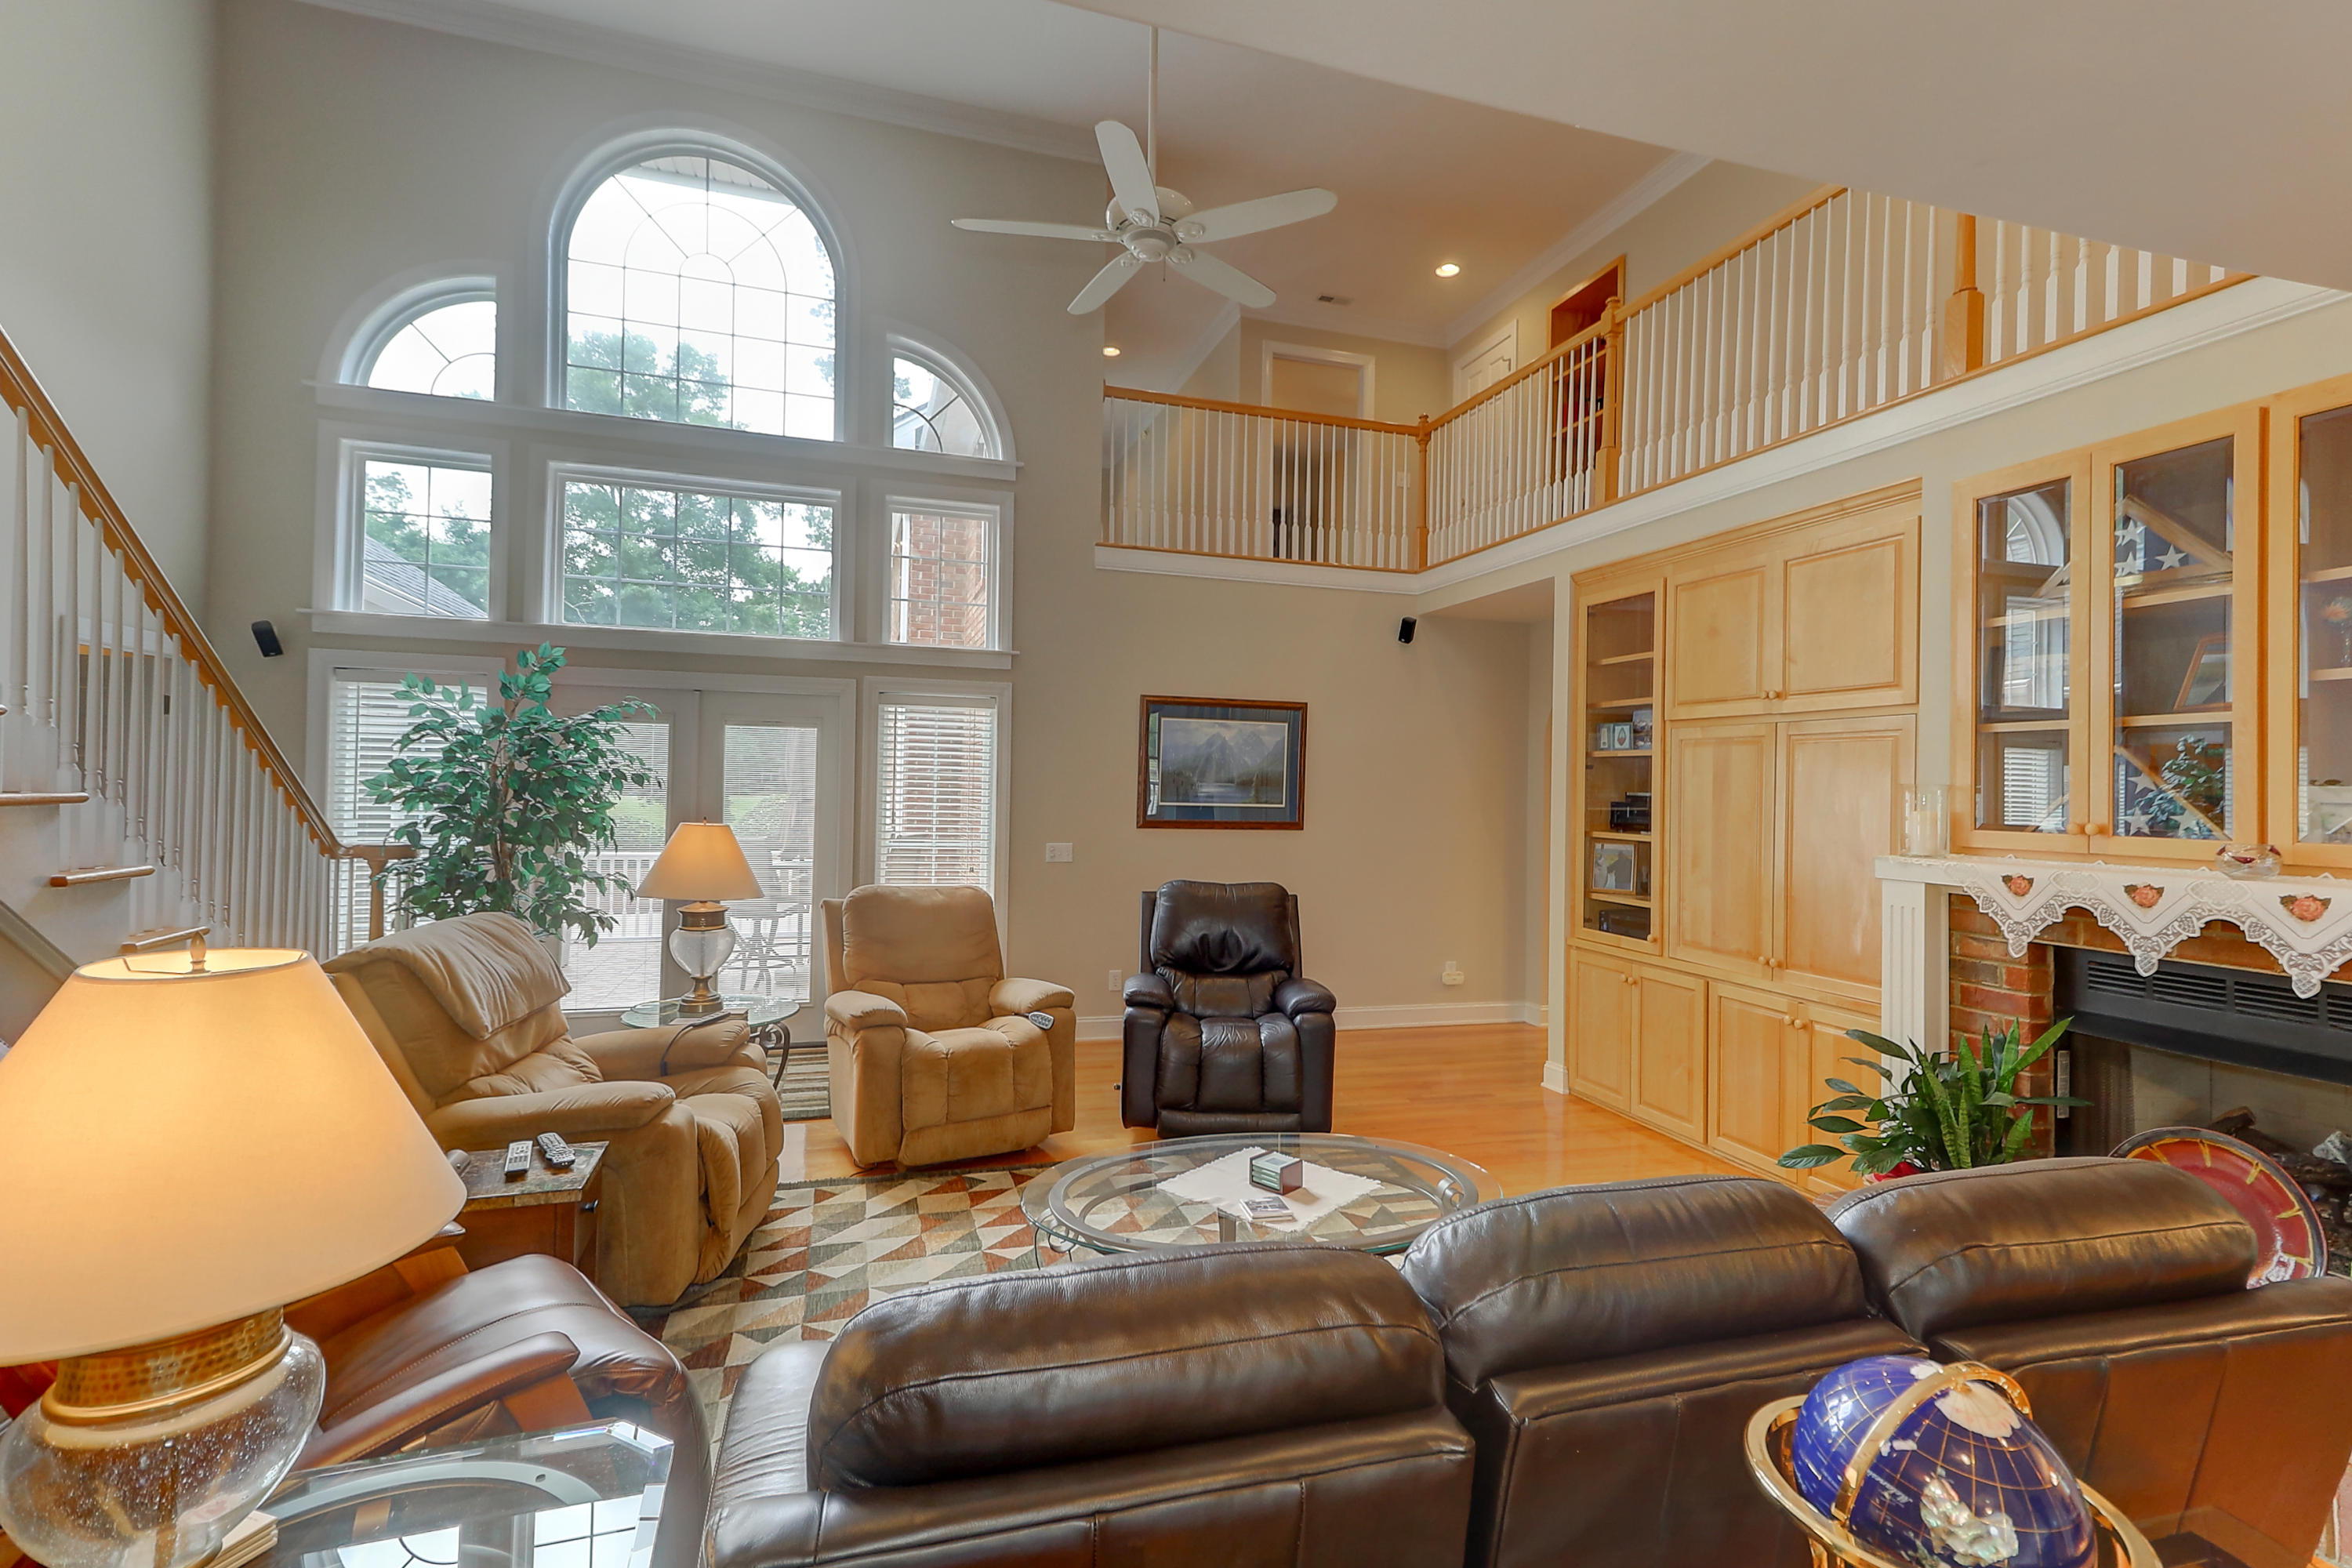 Coosaw Creek Country Club Homes For Sale - 8700 Fairway Woods, North Charleston, SC - 72